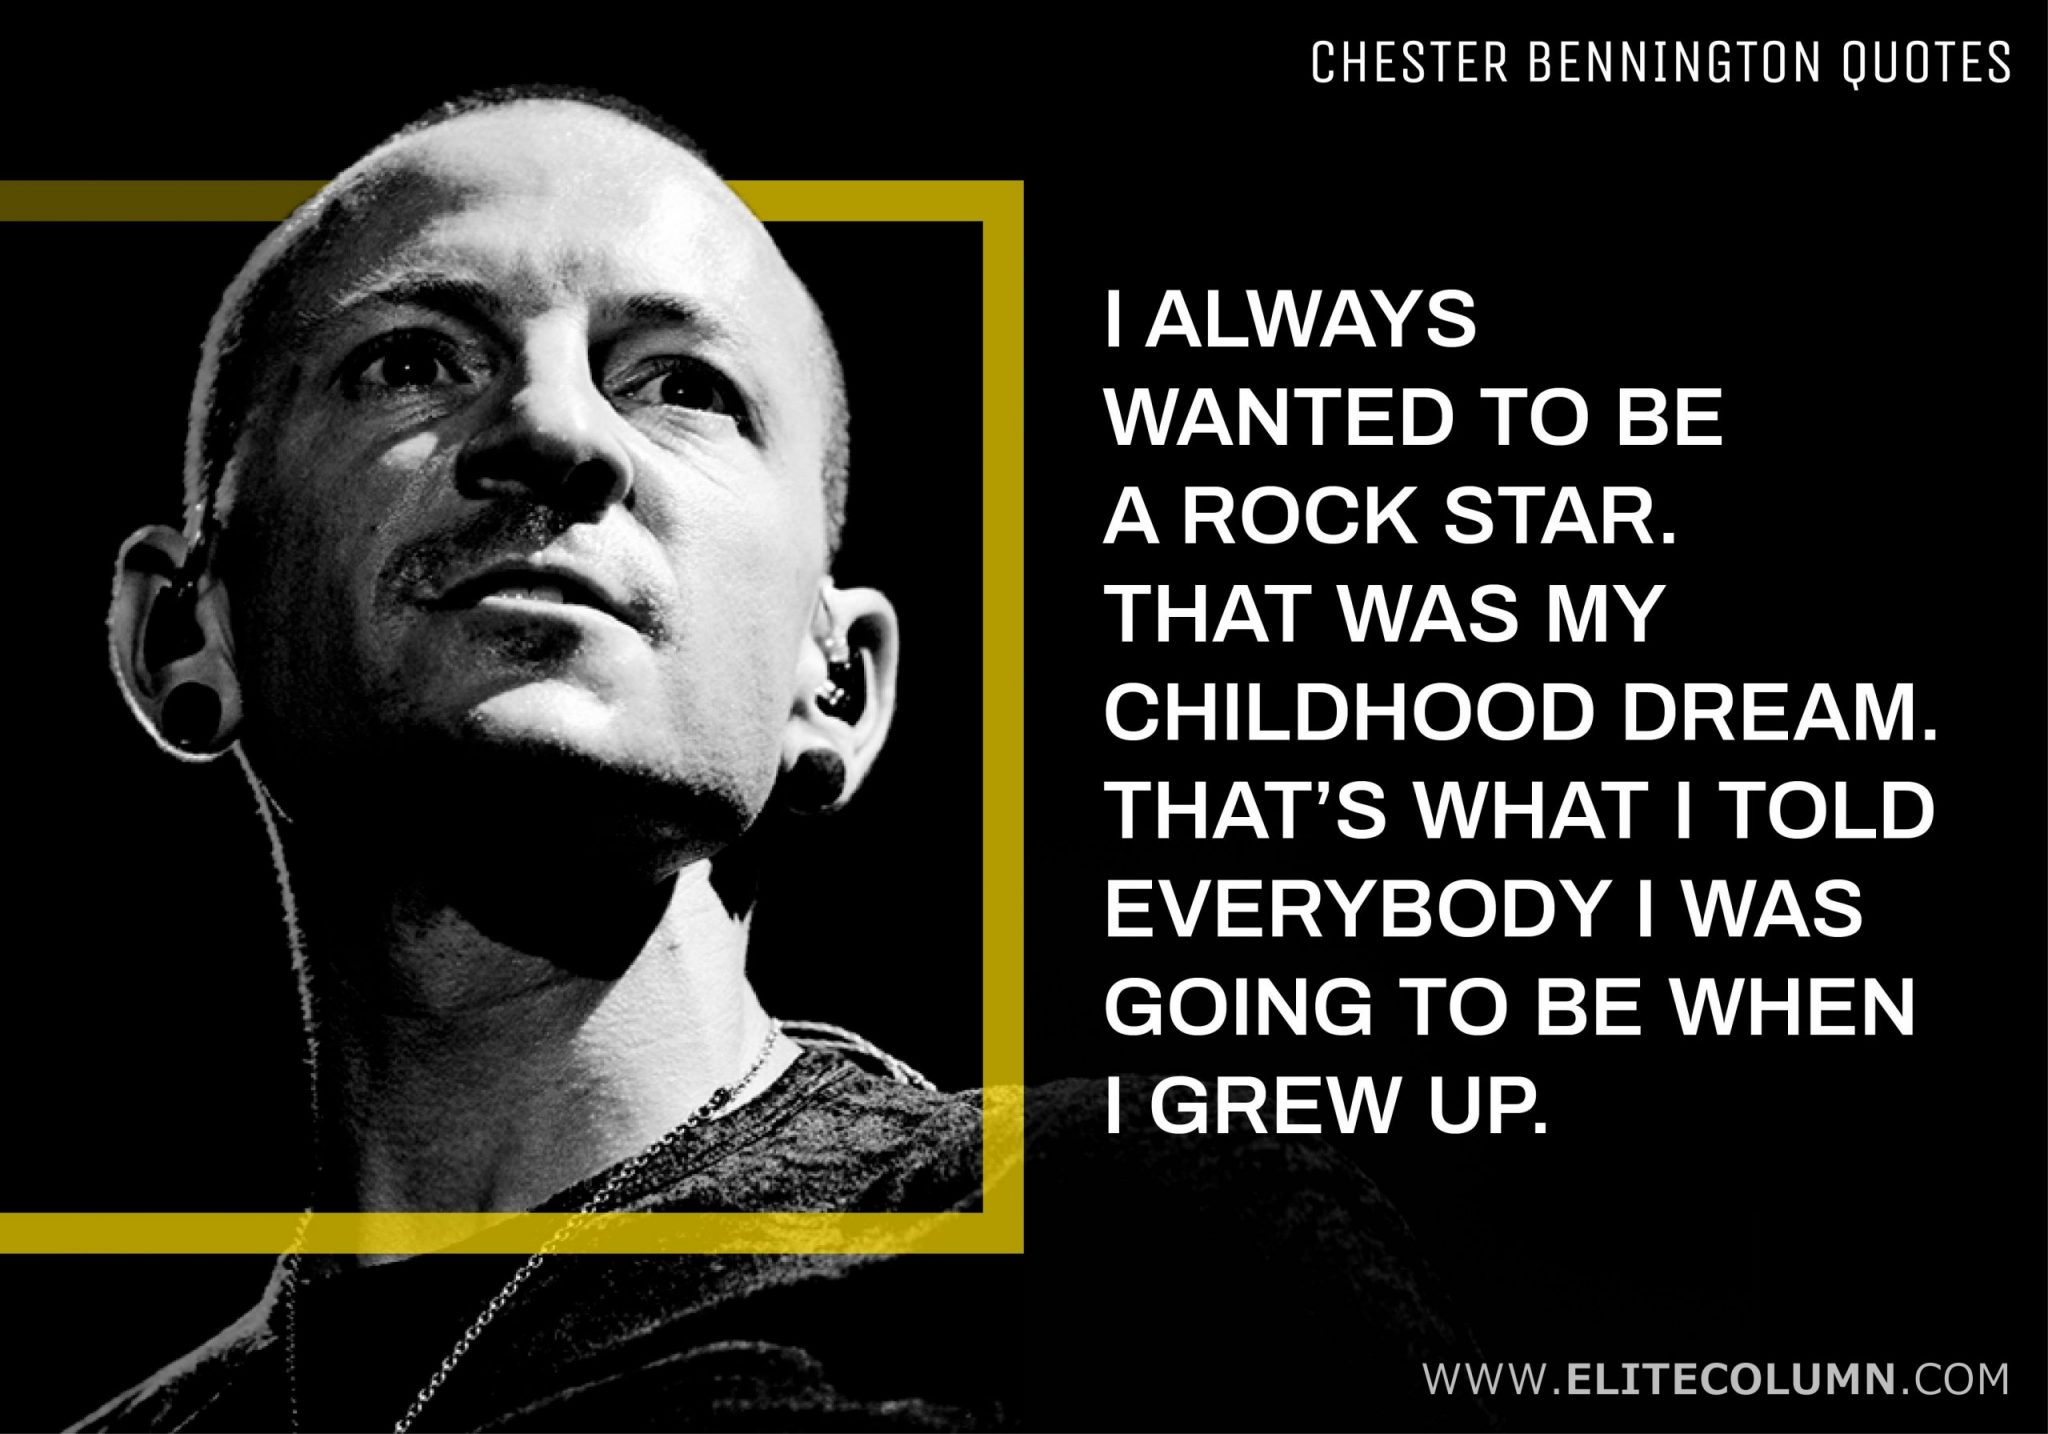 Chester Bennington Quotes (10)